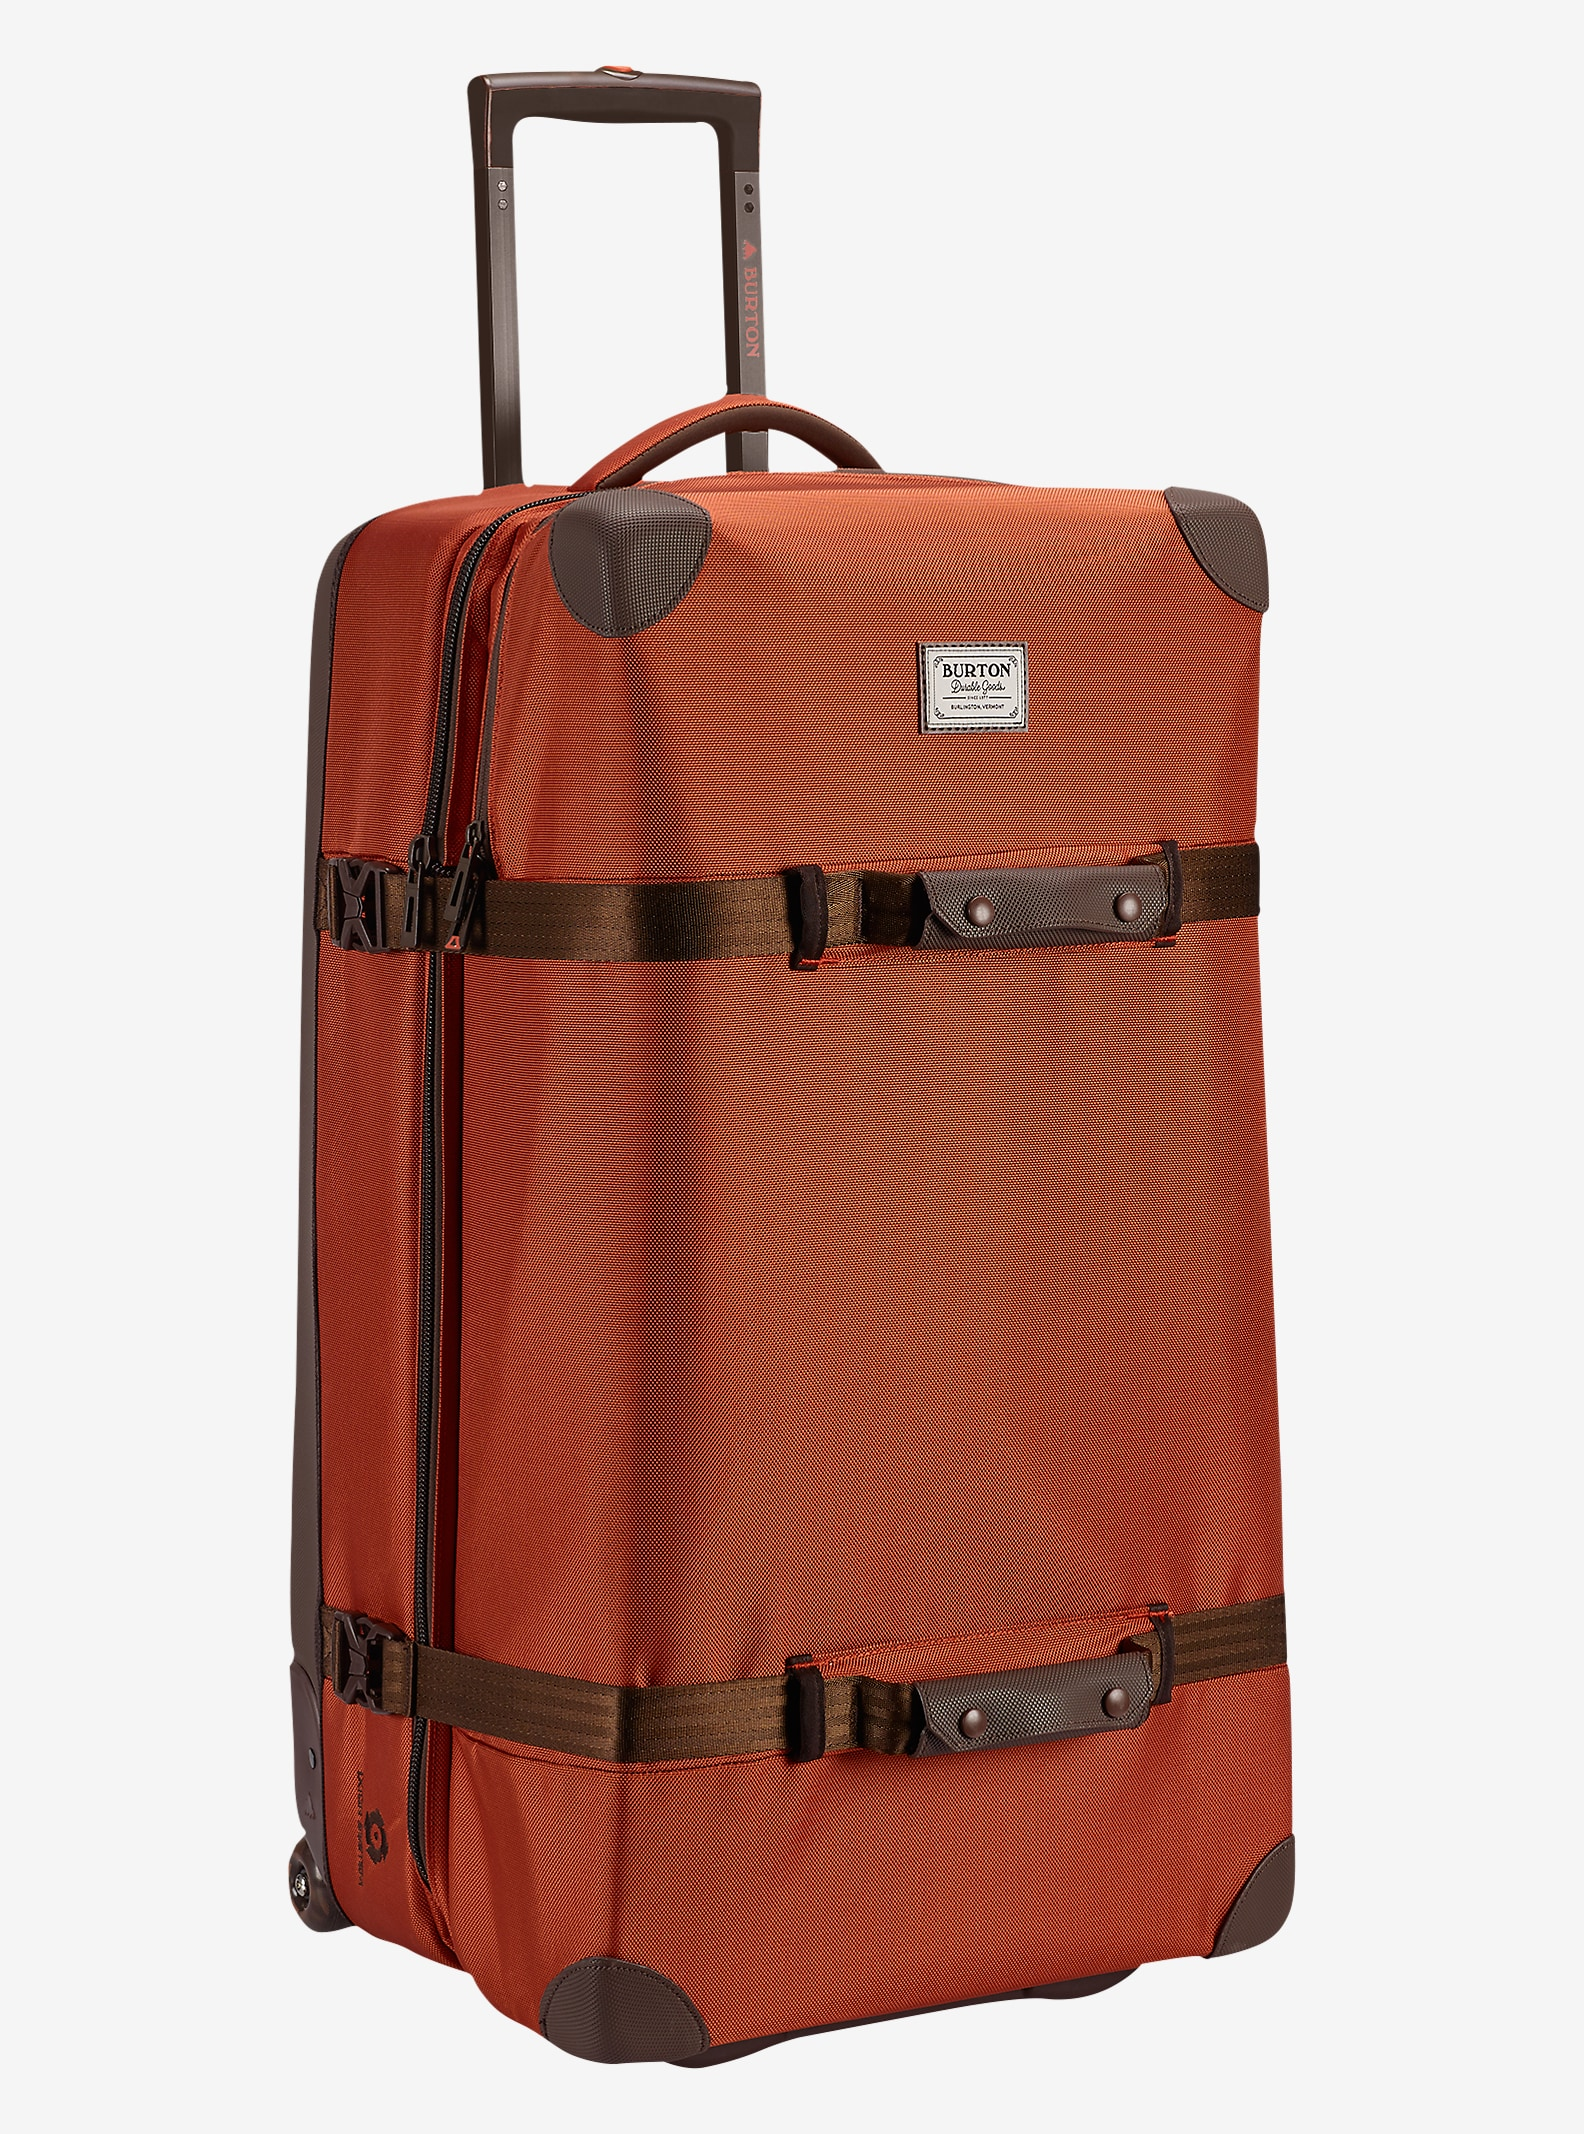 Burton Wheelie Sub Travel Bag shown in Burnt Ochre [bluesign® Approved]